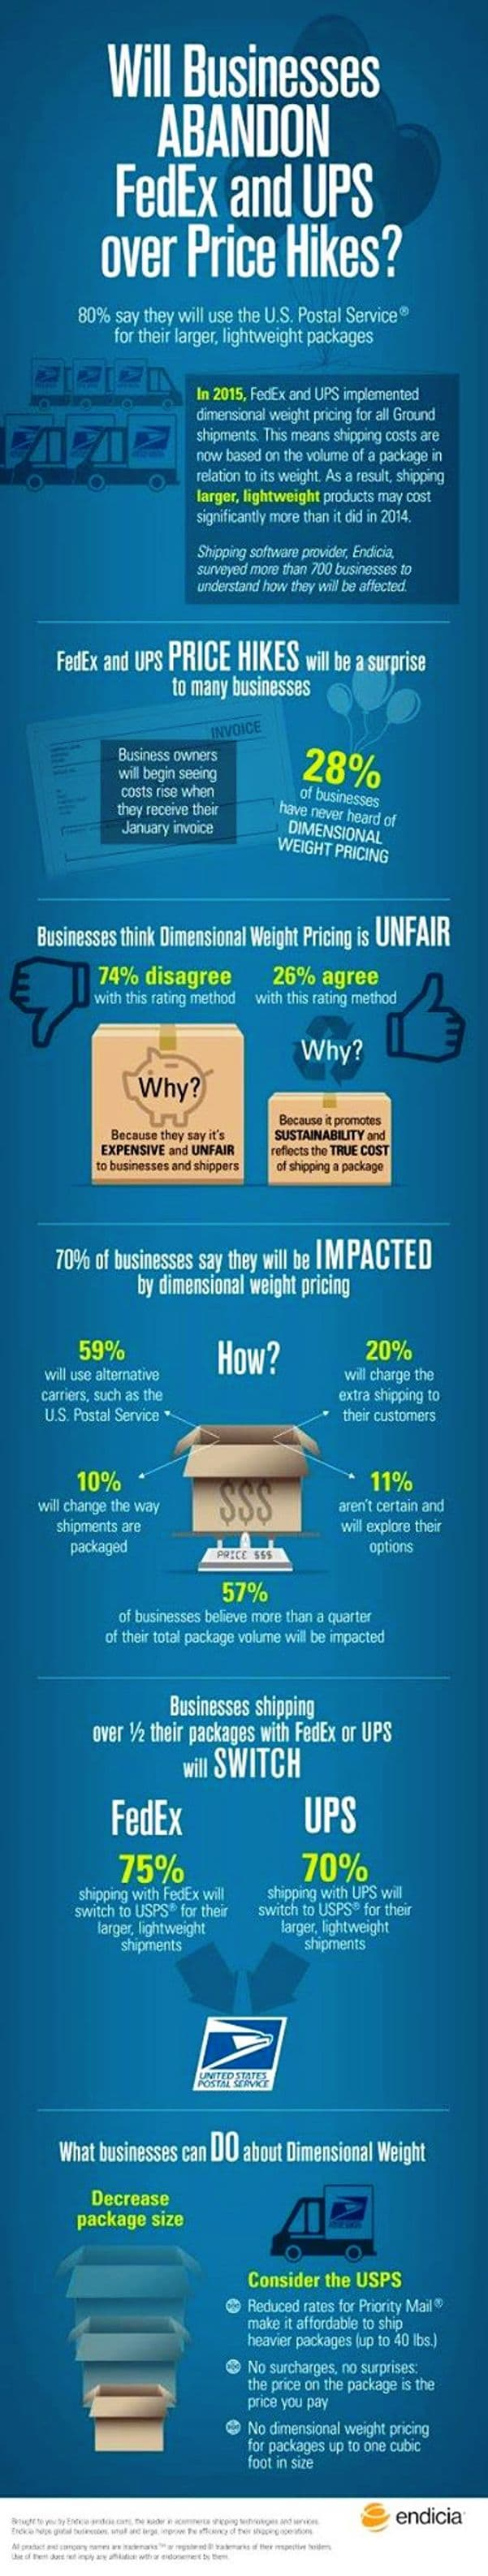 infographic_dimensional_pricing